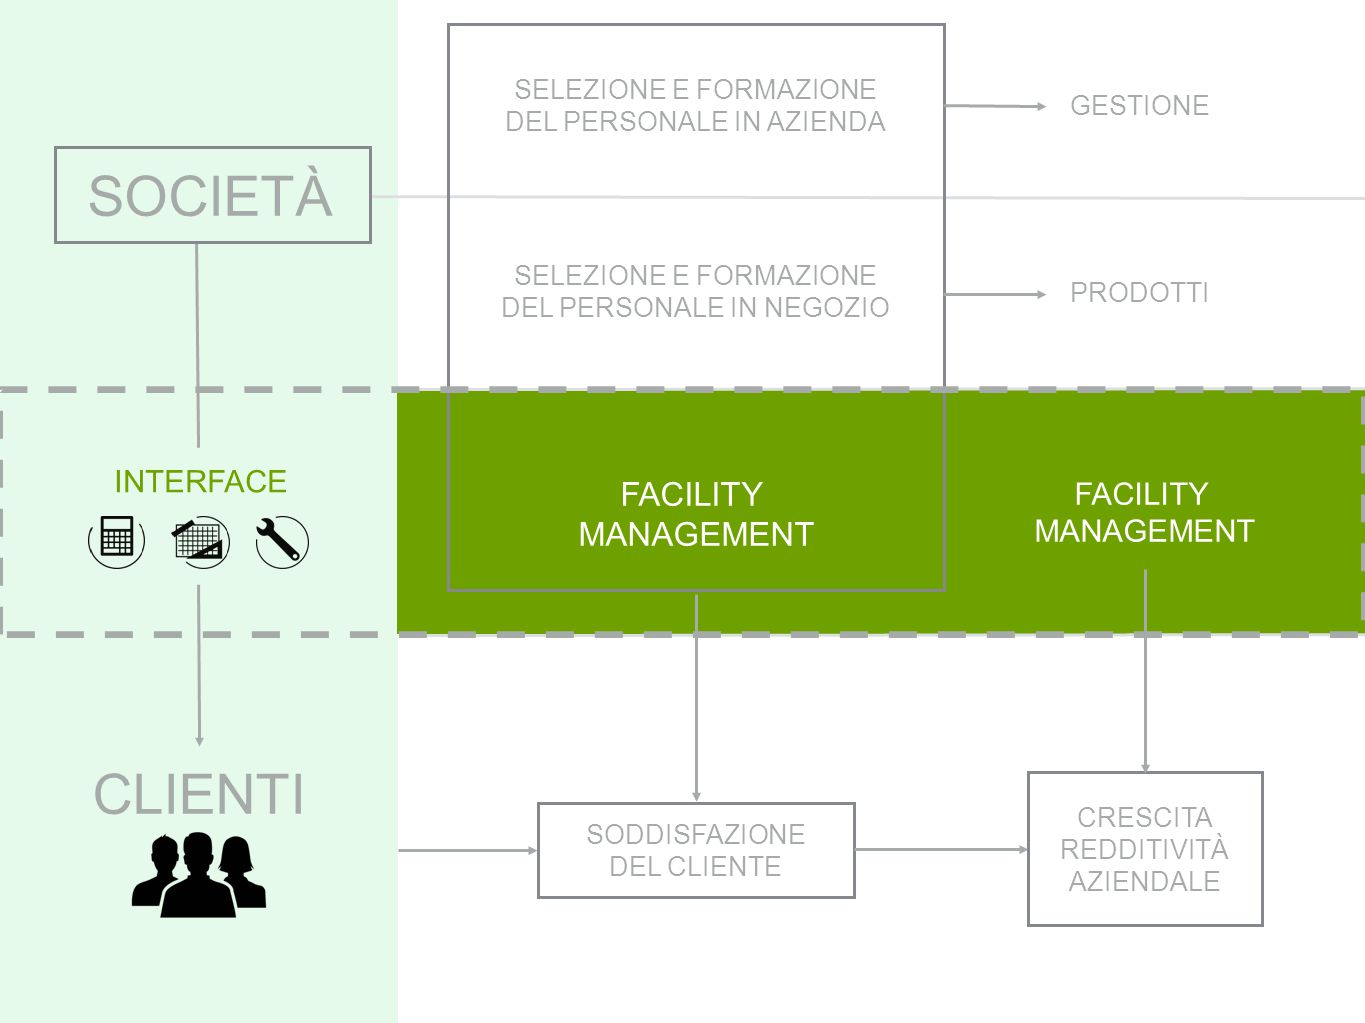 SOCIETÀ CLIENTI FACILITY MANAGEMENT INTERFACE FACILITY MANAGEMENT